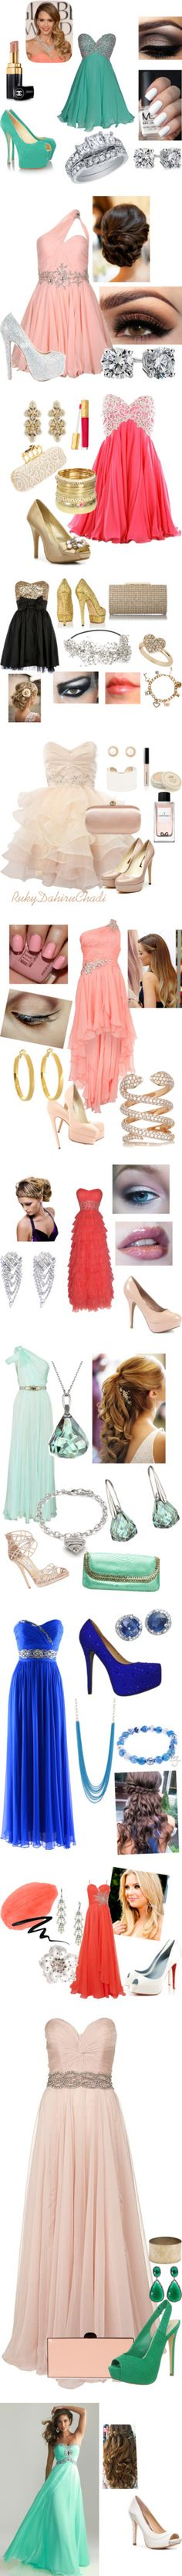 """""""Prom 2013"""" by gbean425 on Polyvore"""